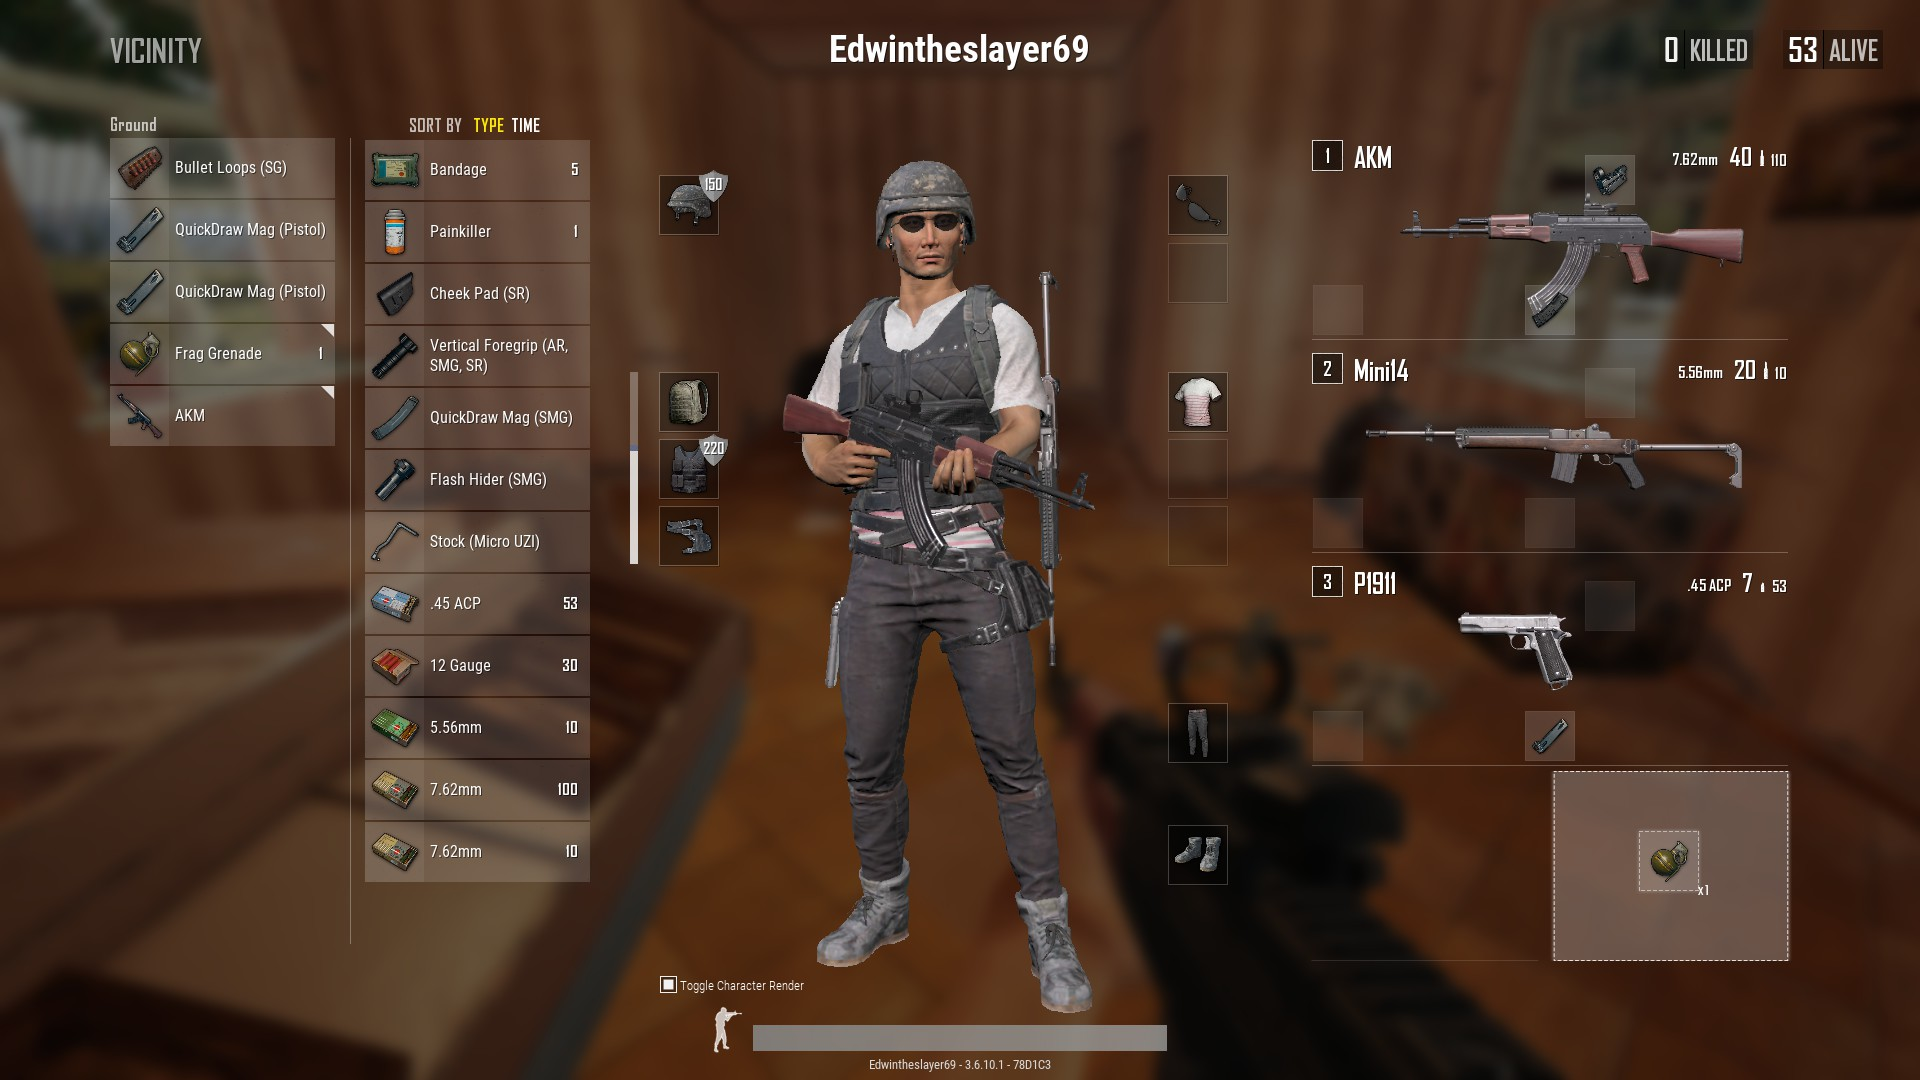 PUBG: How to equip guns, attachments and grenades (Guide